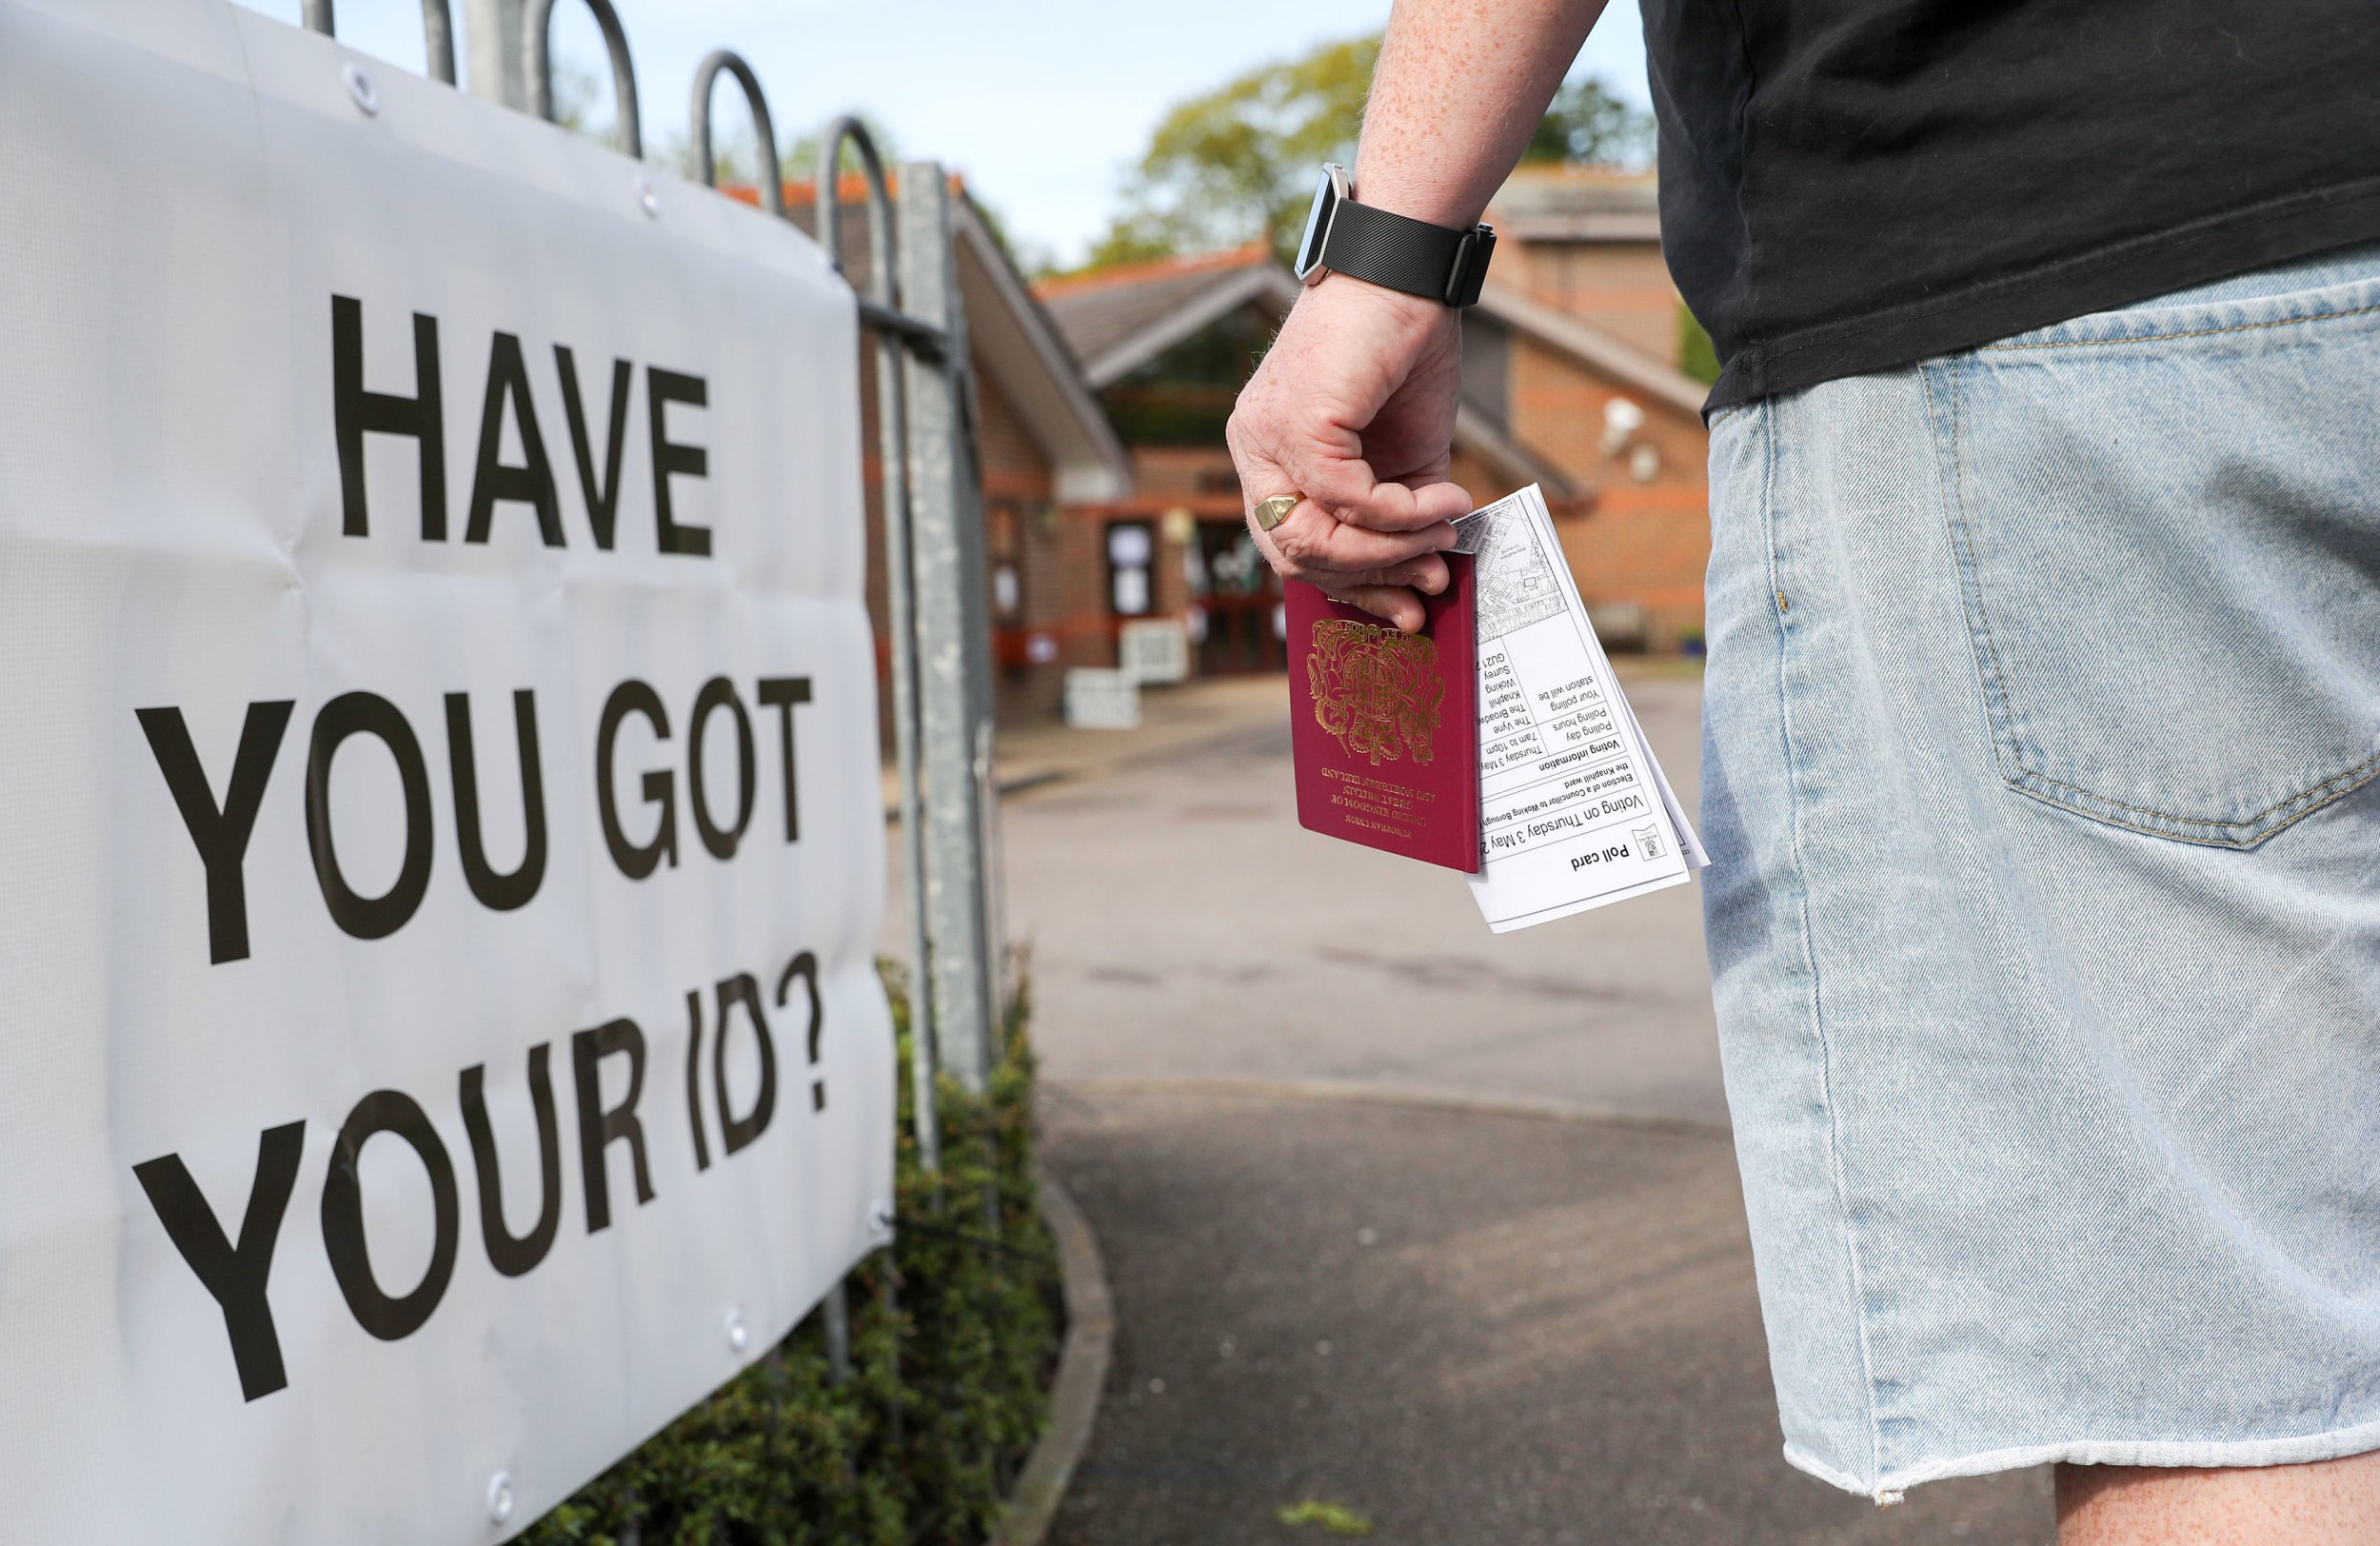 Voters are being turned away from polling stations during 'absurd' ID trials